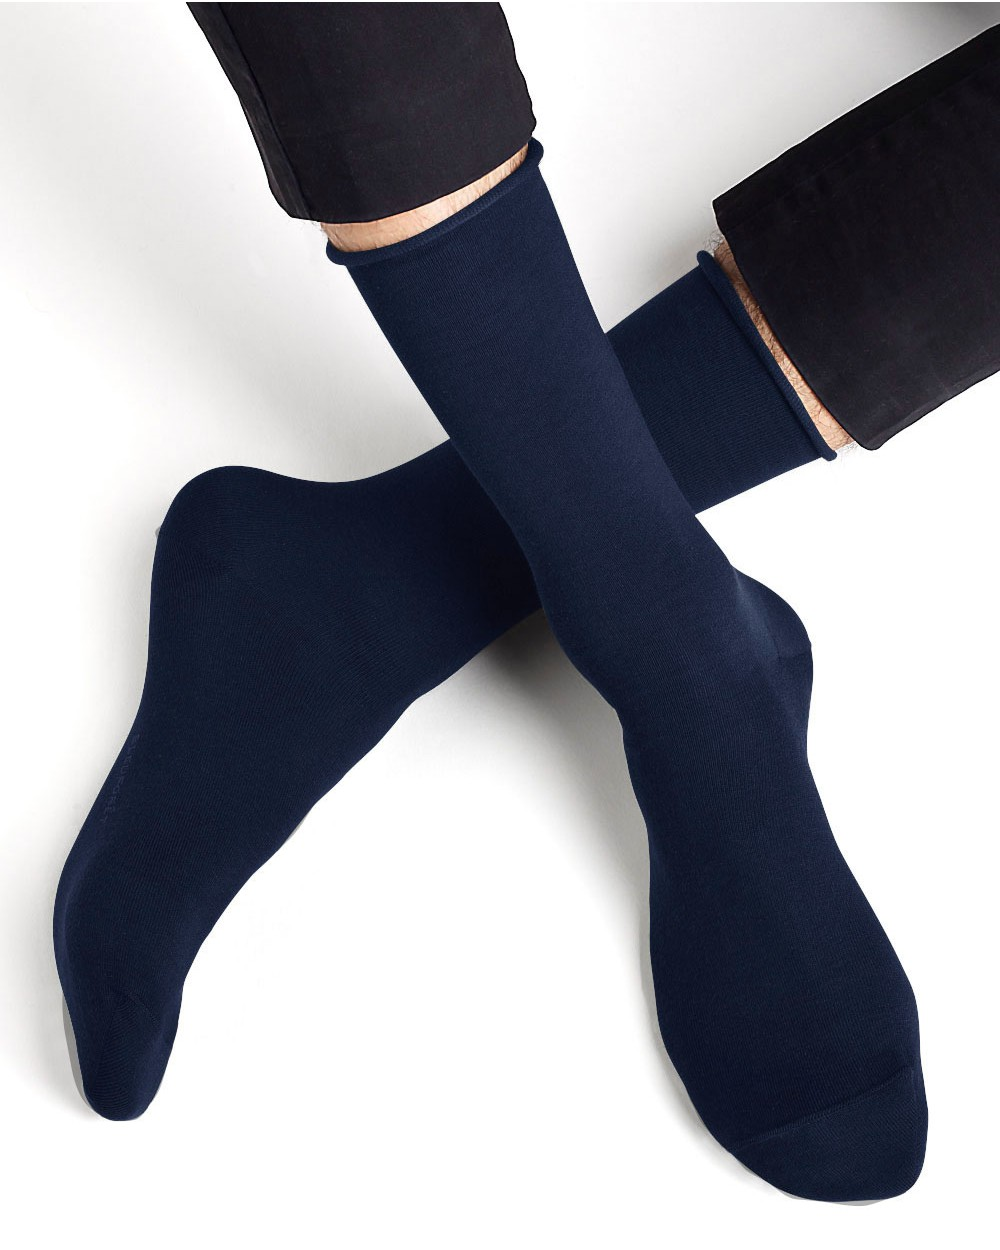 Egyptian cotton rolled edge socks